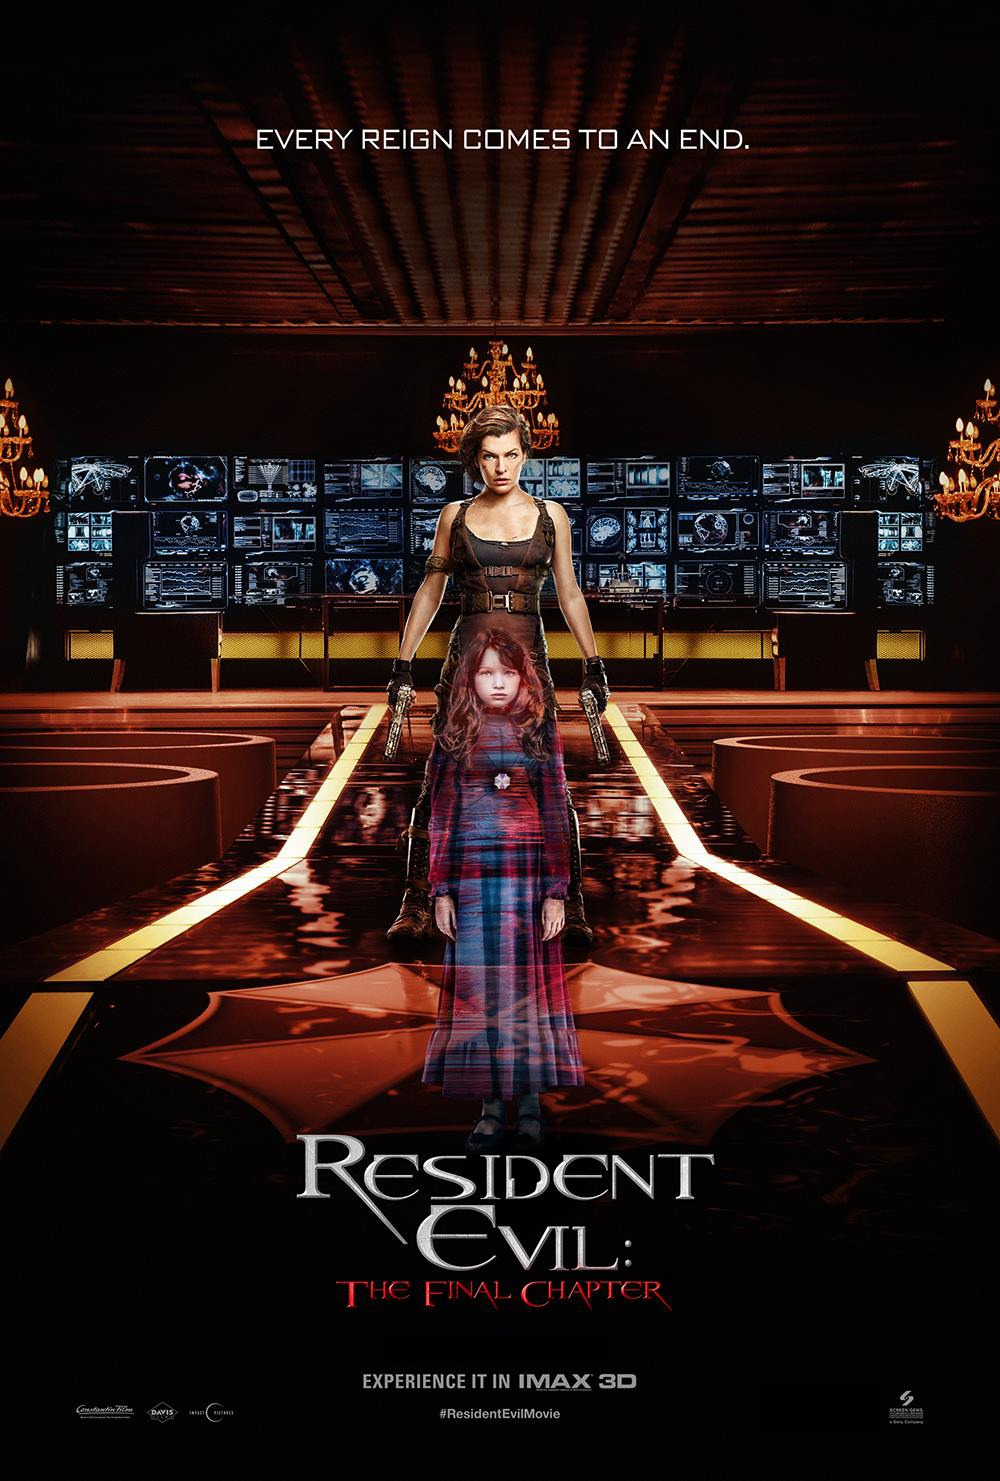 kinopoisk.ru-Resident-Evil_3A-The-Final-Chapter-2885045